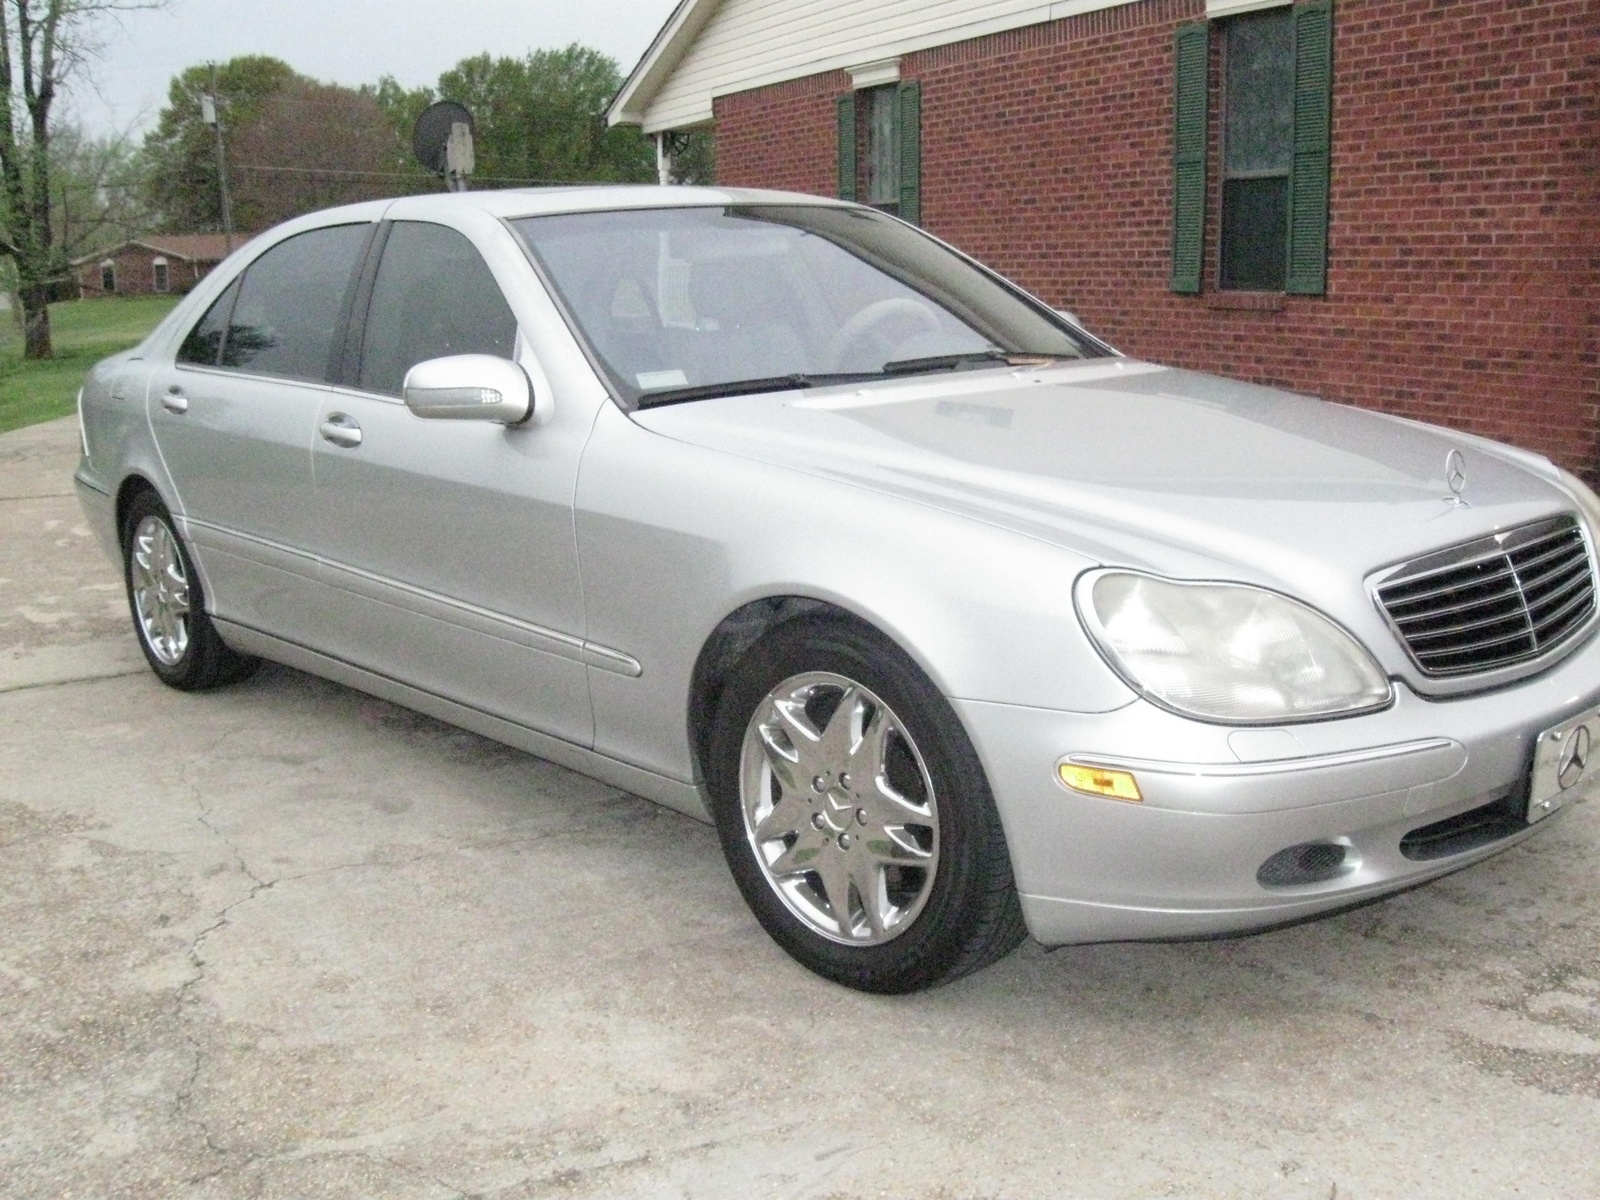 2001 mercedes benz s class pictures cargurus For2001 Mercedes Benz S500 Specs